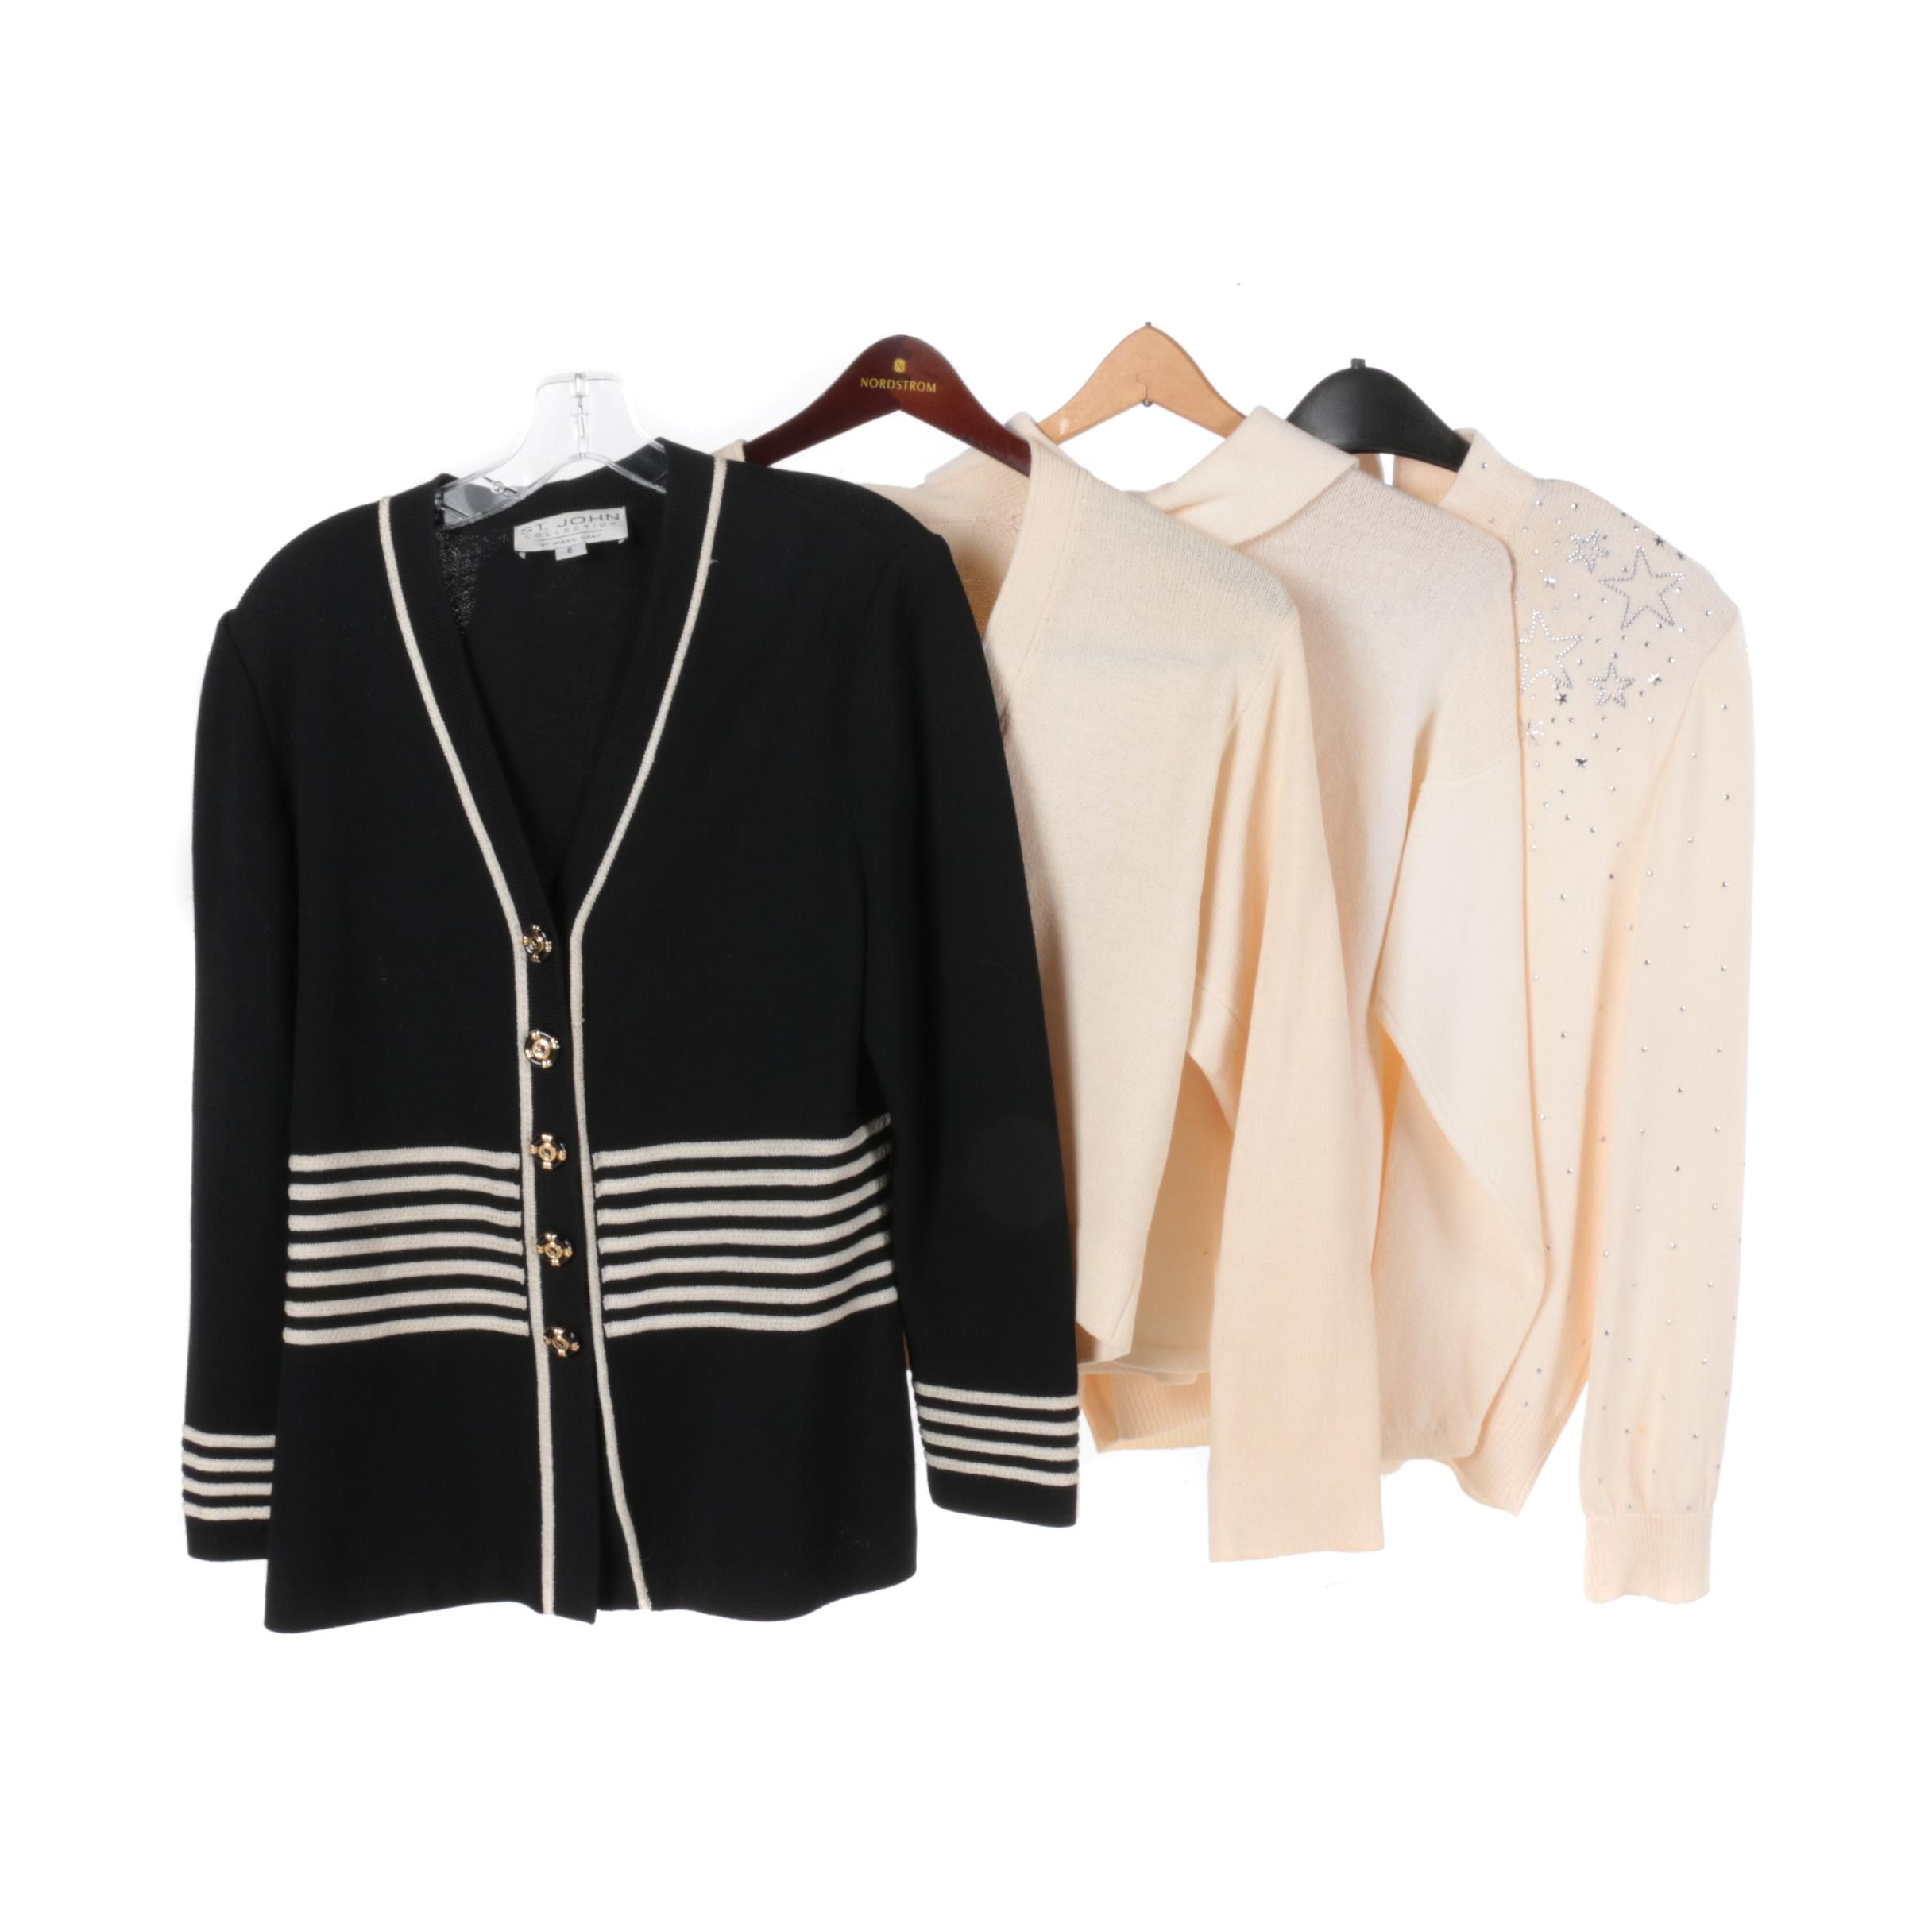 Women's St. John by Marie Gray Tops and Cardigans